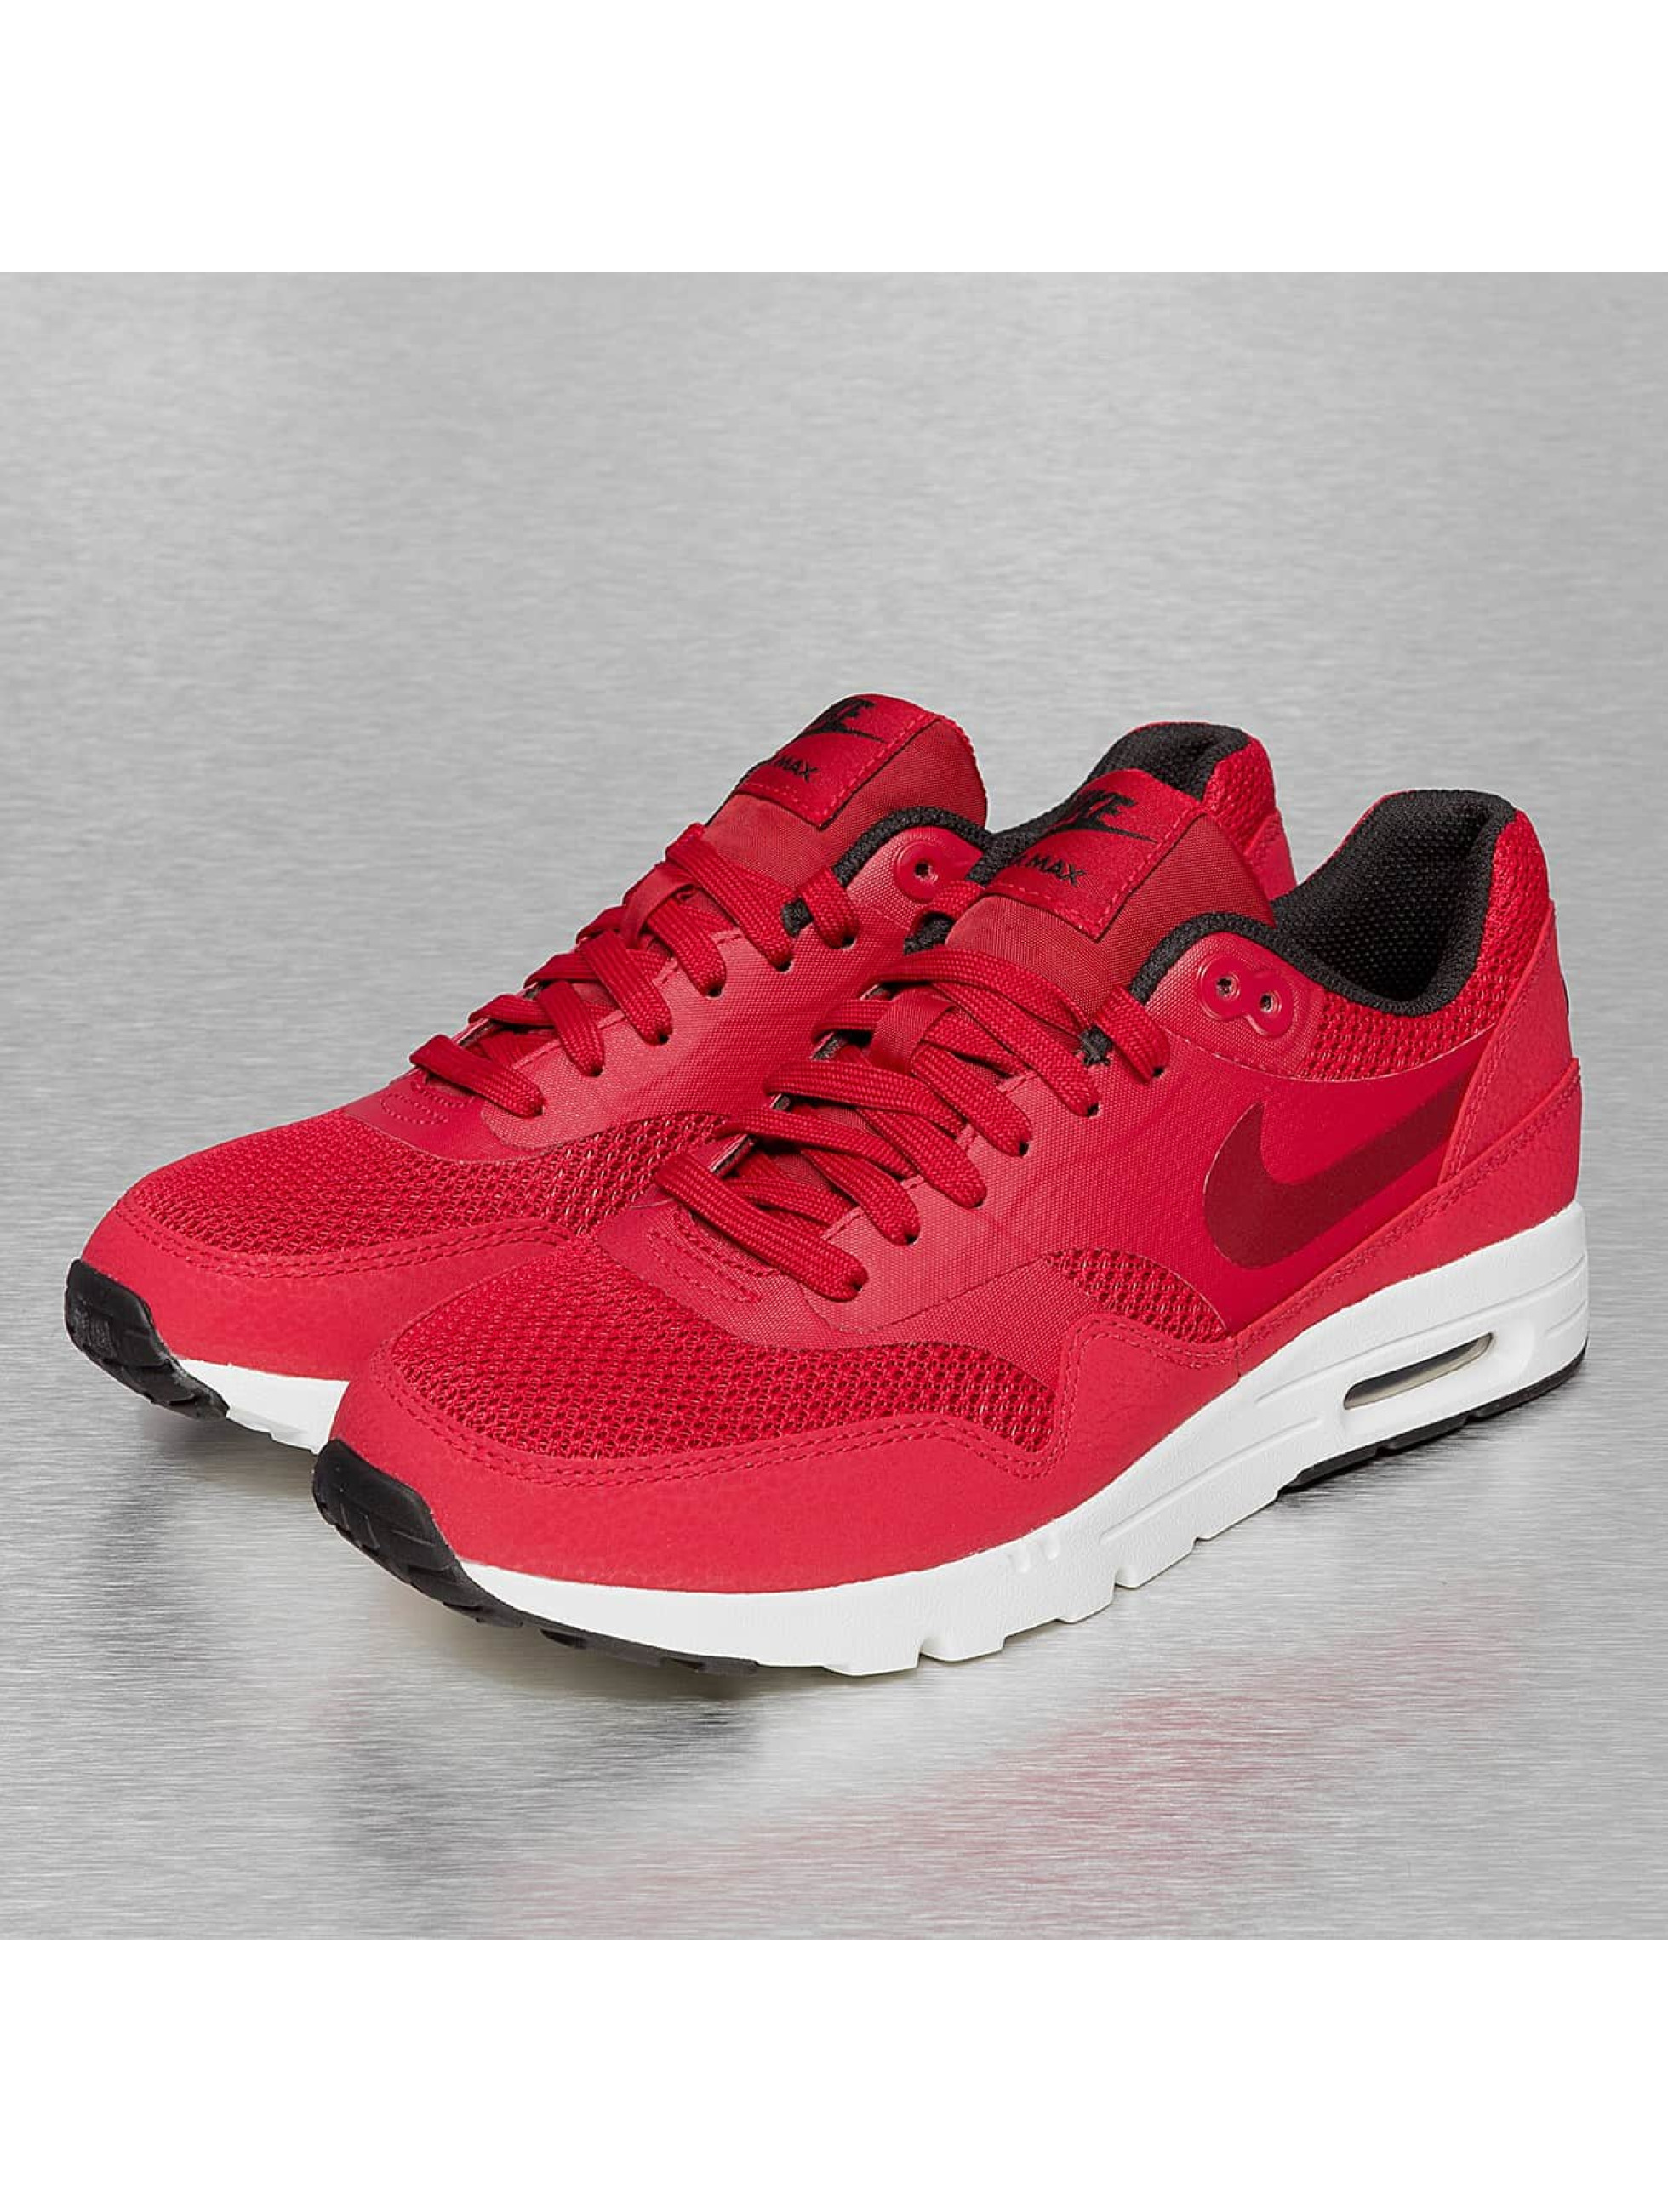 nike air PRESTO images - Nike Baskets Wmns Air Max 1 Ultra Essentials Noir | Top Swiss ...